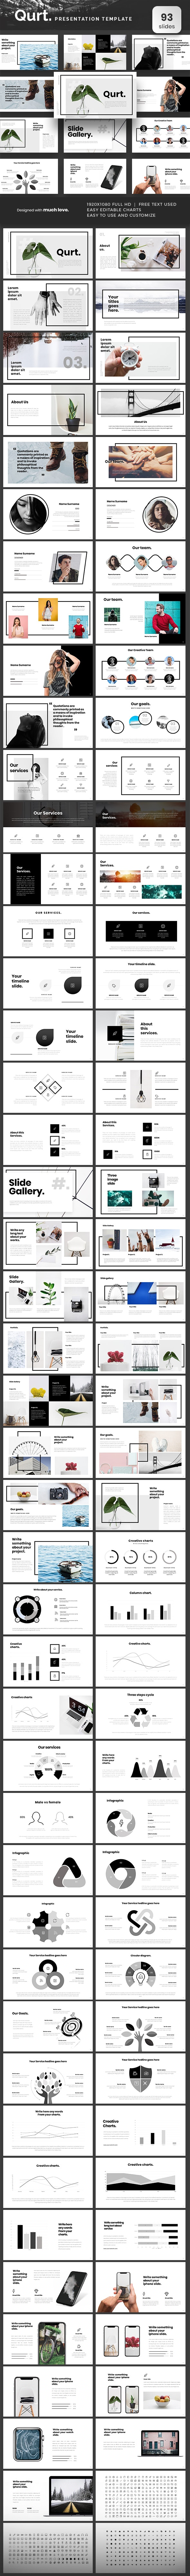 Qurt Powerpoint Presentation Template - PowerPoint Templates Presentation Templates